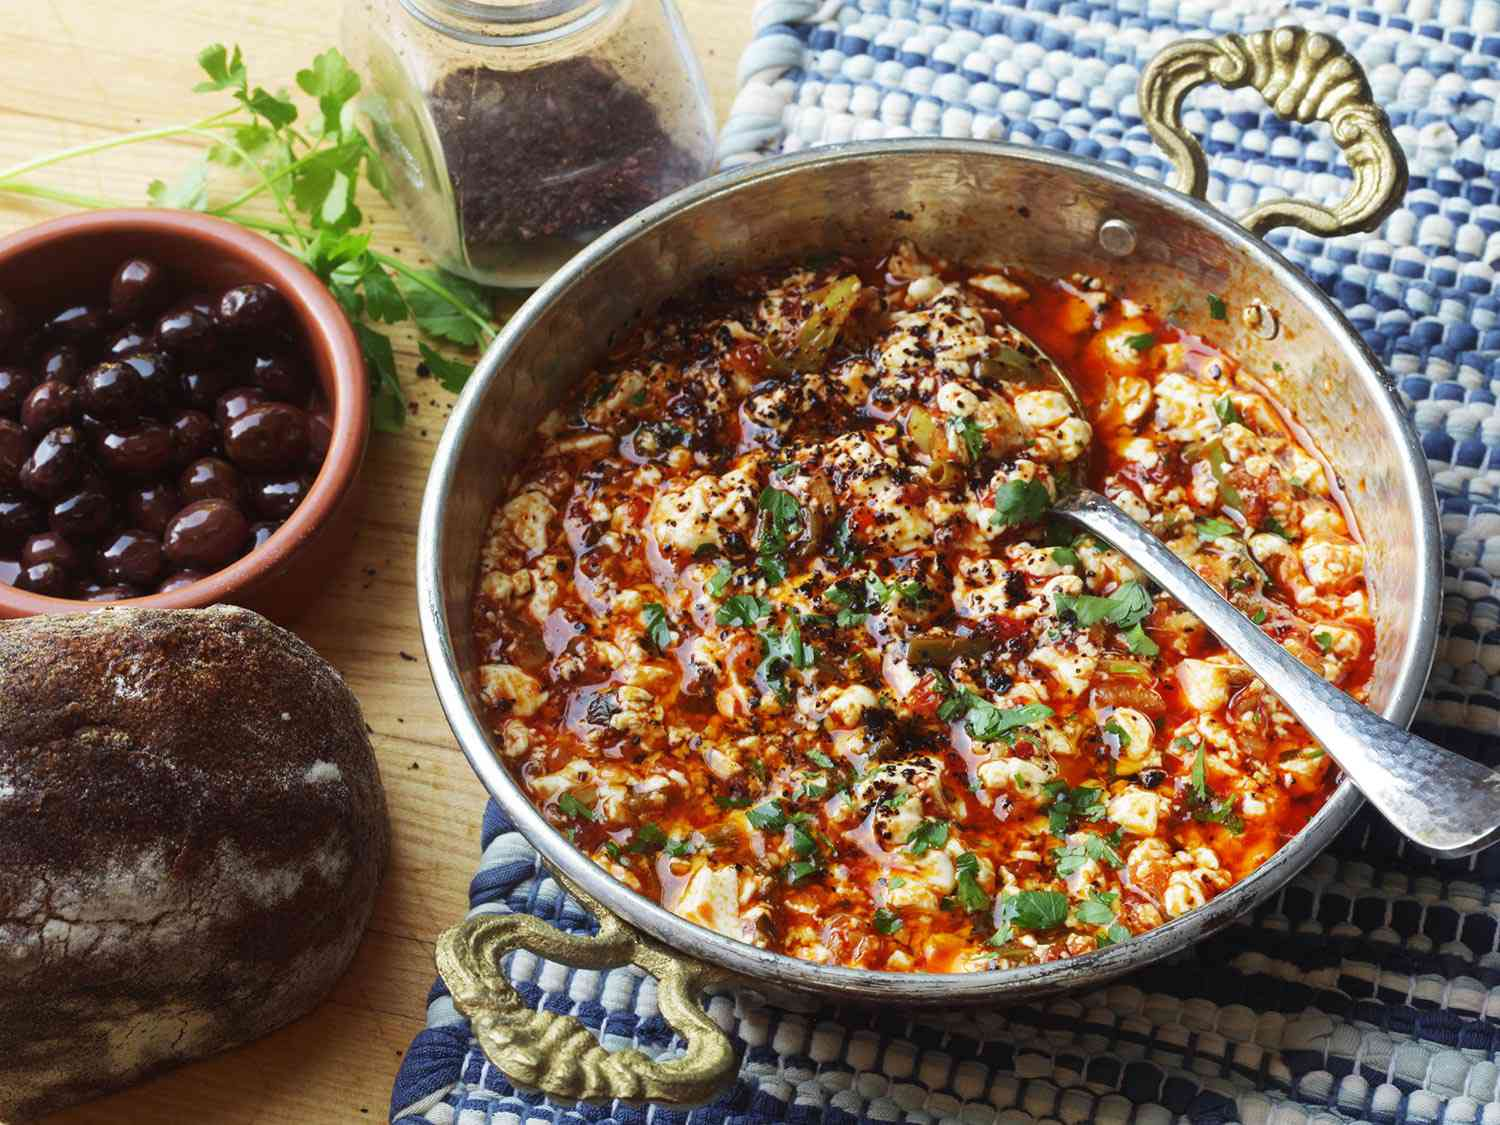 Turkish style vegan menemen in a Turkish style pan. There is a small dish of black olives next to it. .